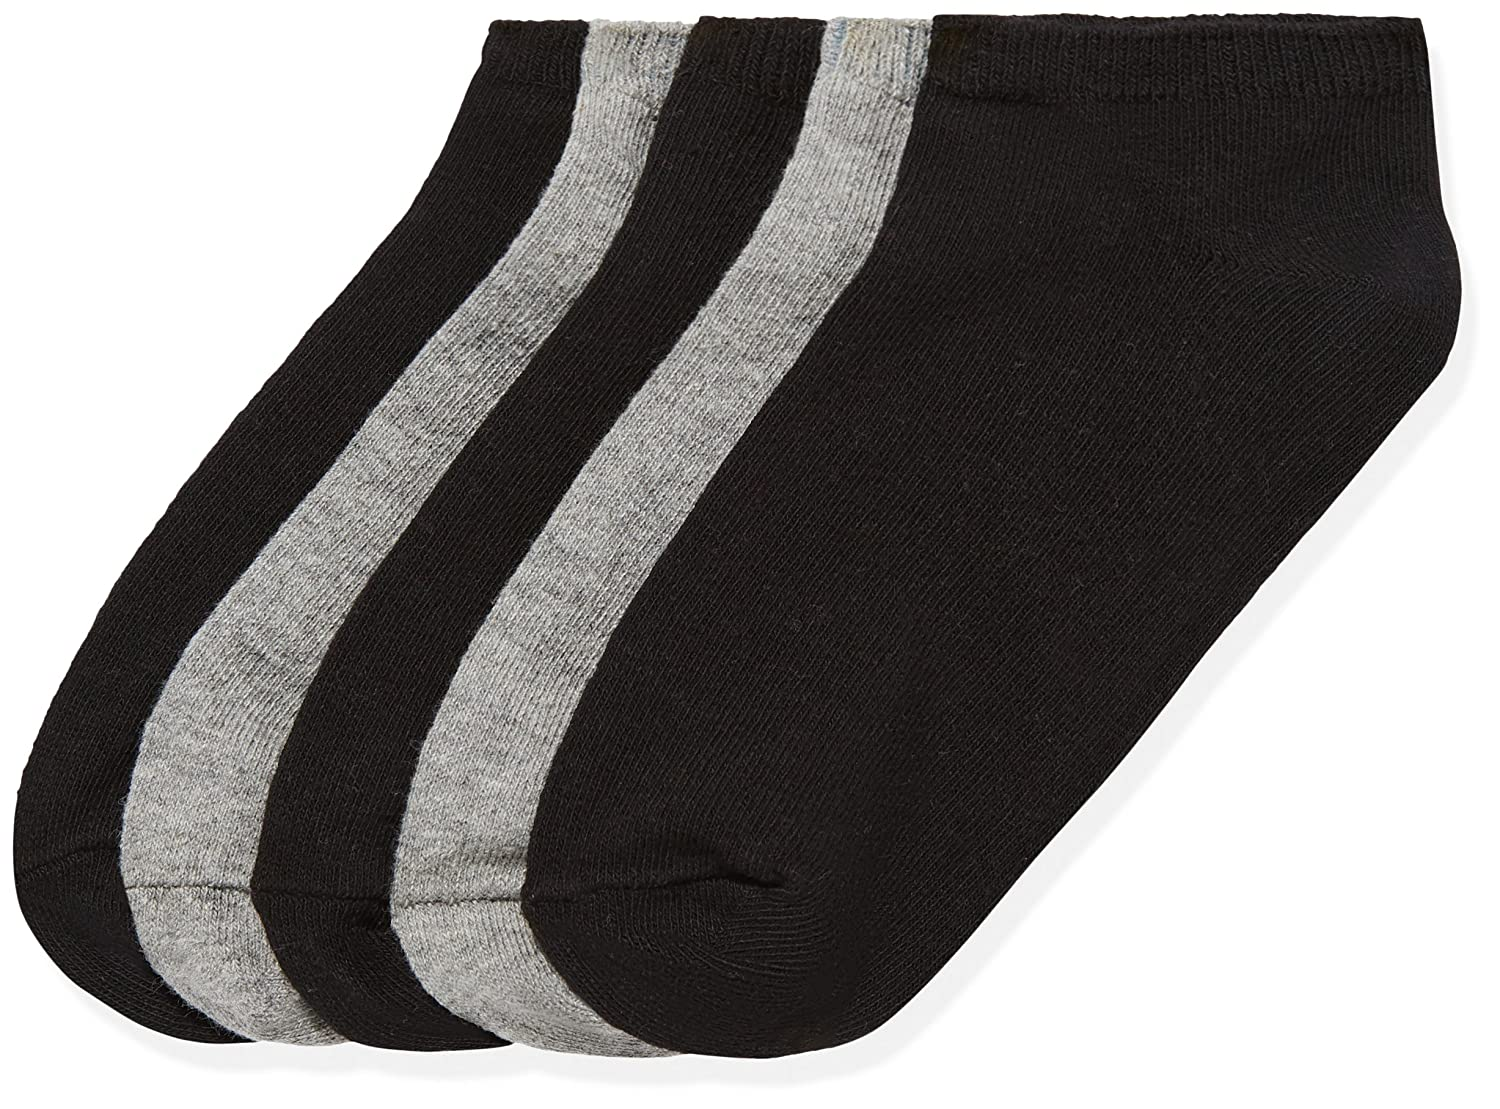 RED WAGON Girl's Grey/White Trainer Liners Ankle Socks 5-Pack FIND C051M